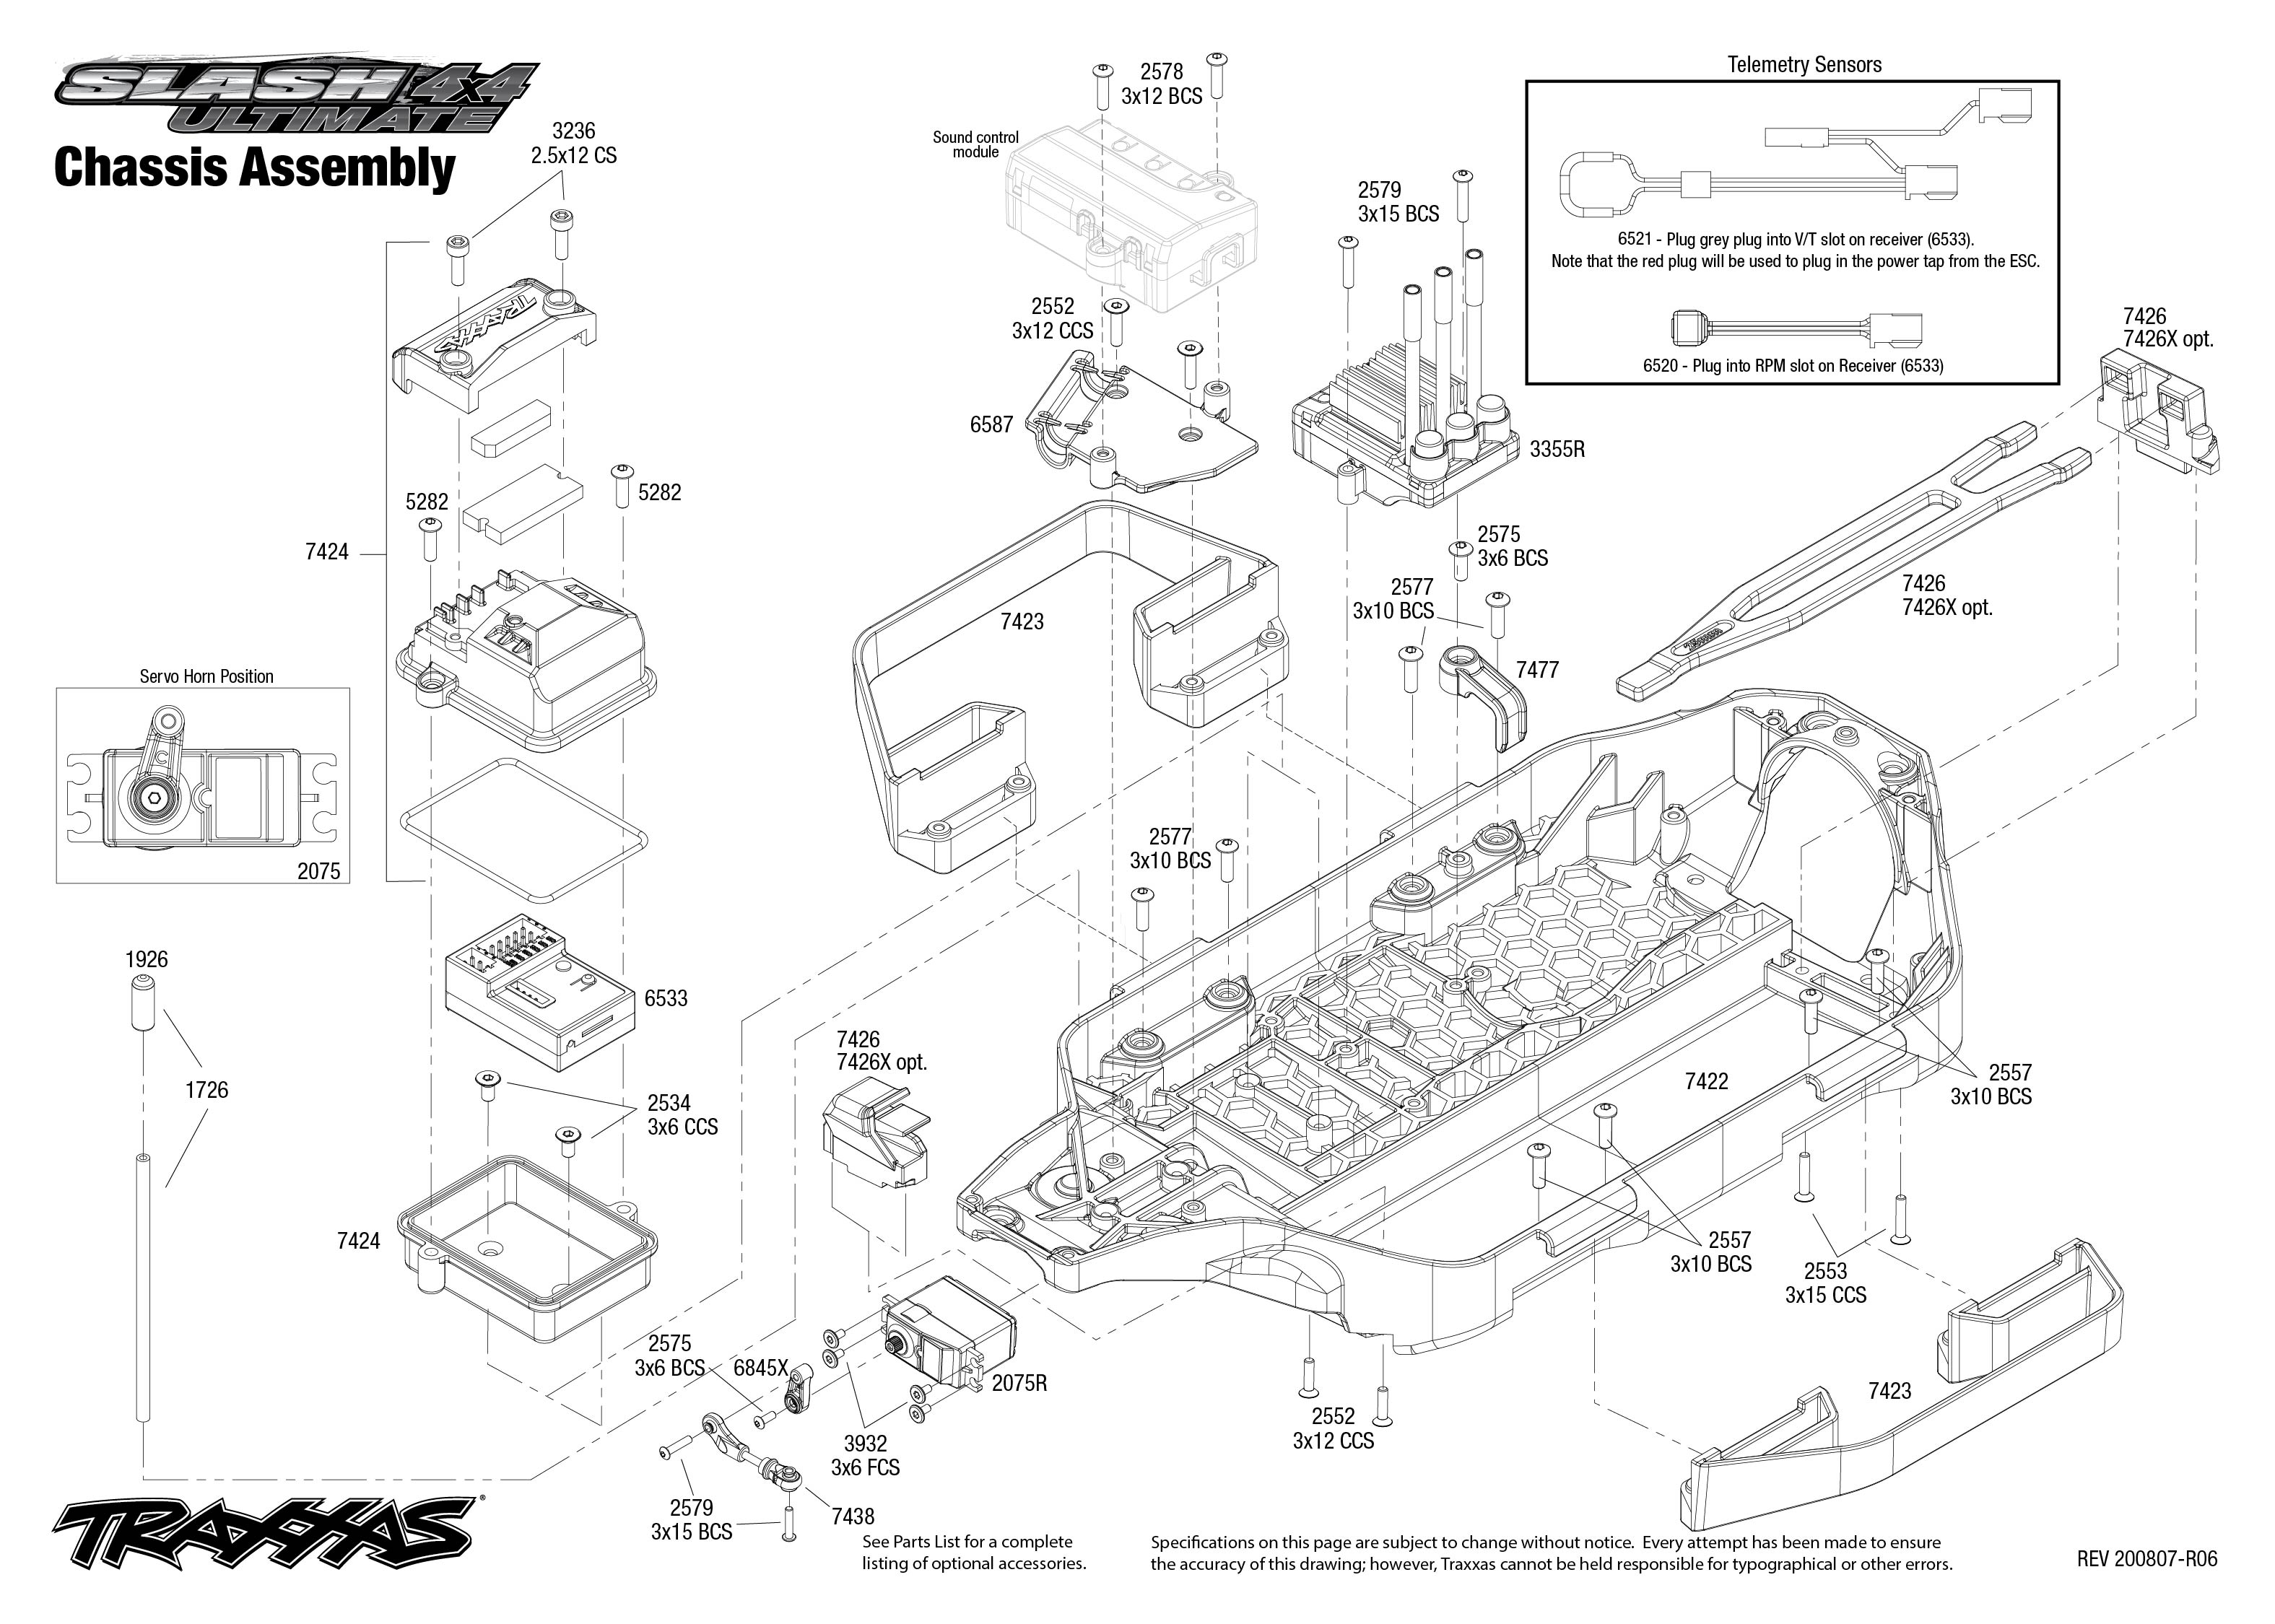 Slash 4X4 Ultimate (68077-24) Chassis Assembly Exploded